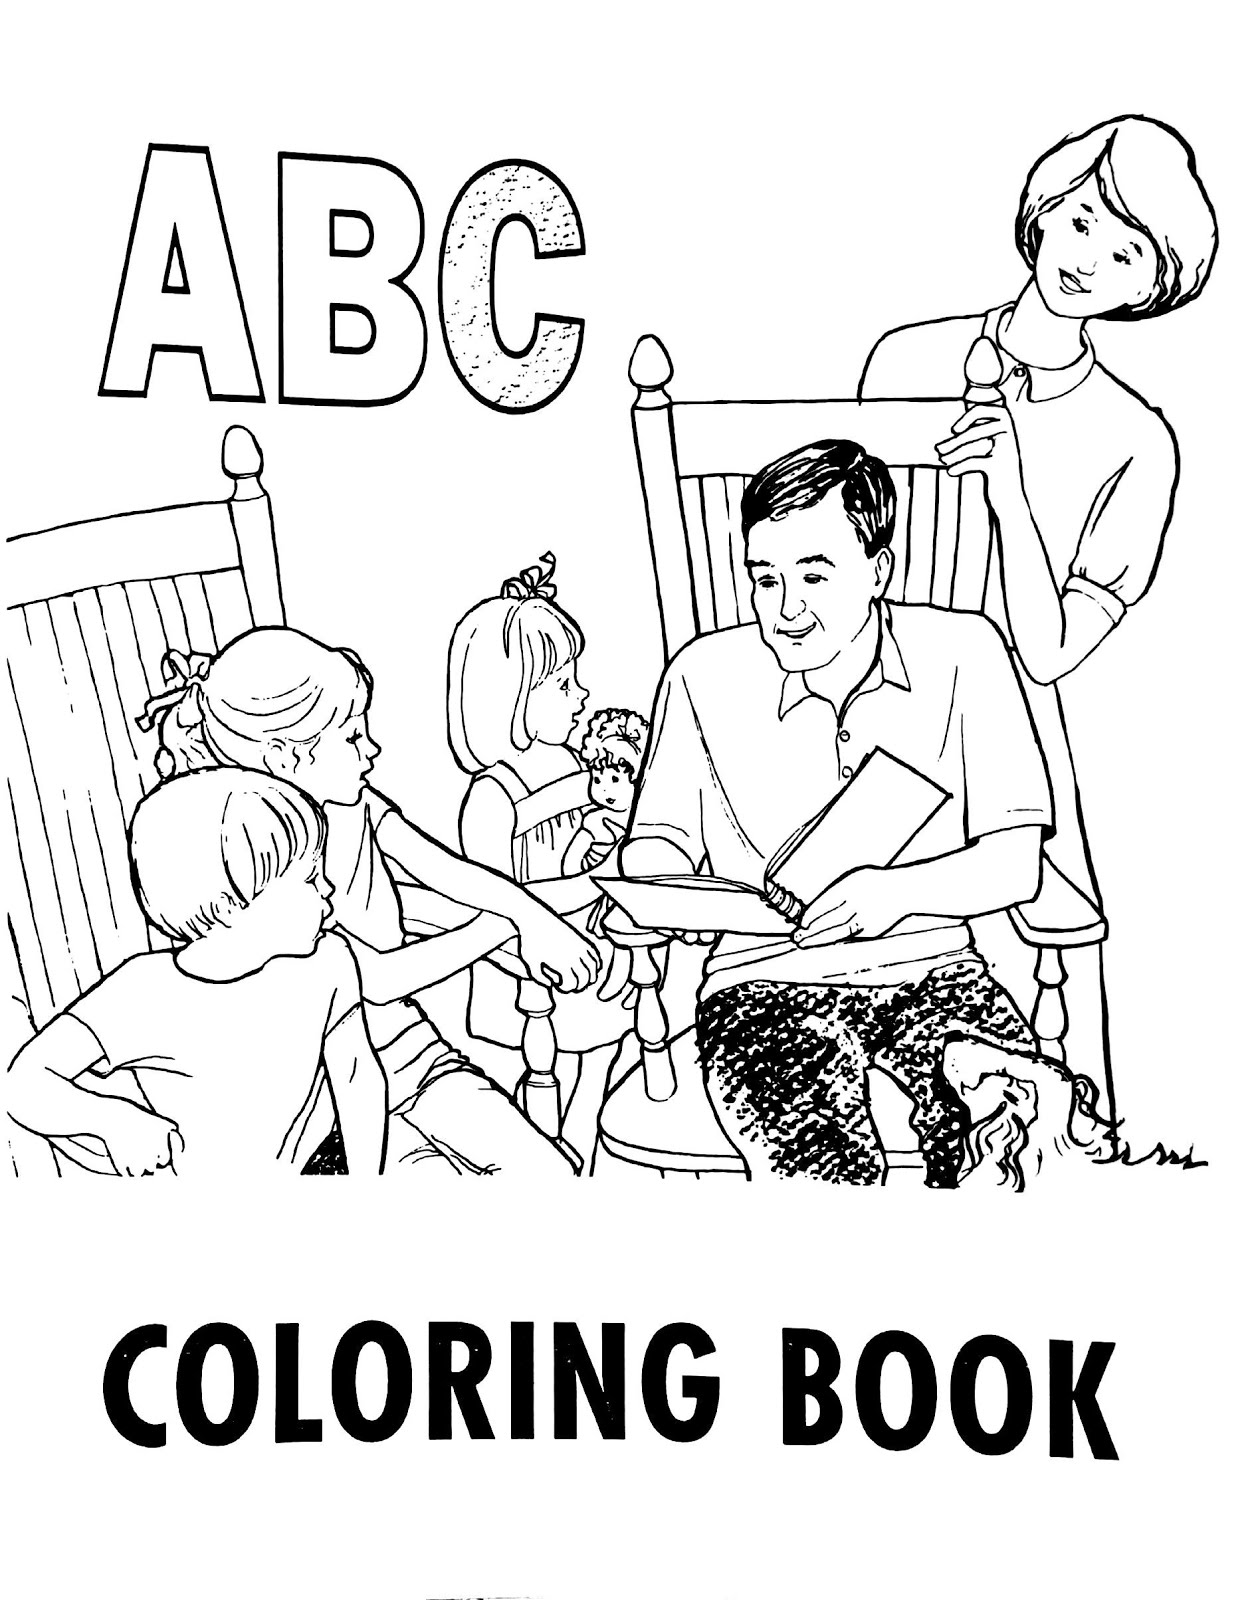 abc bible coloring pages - photo#22